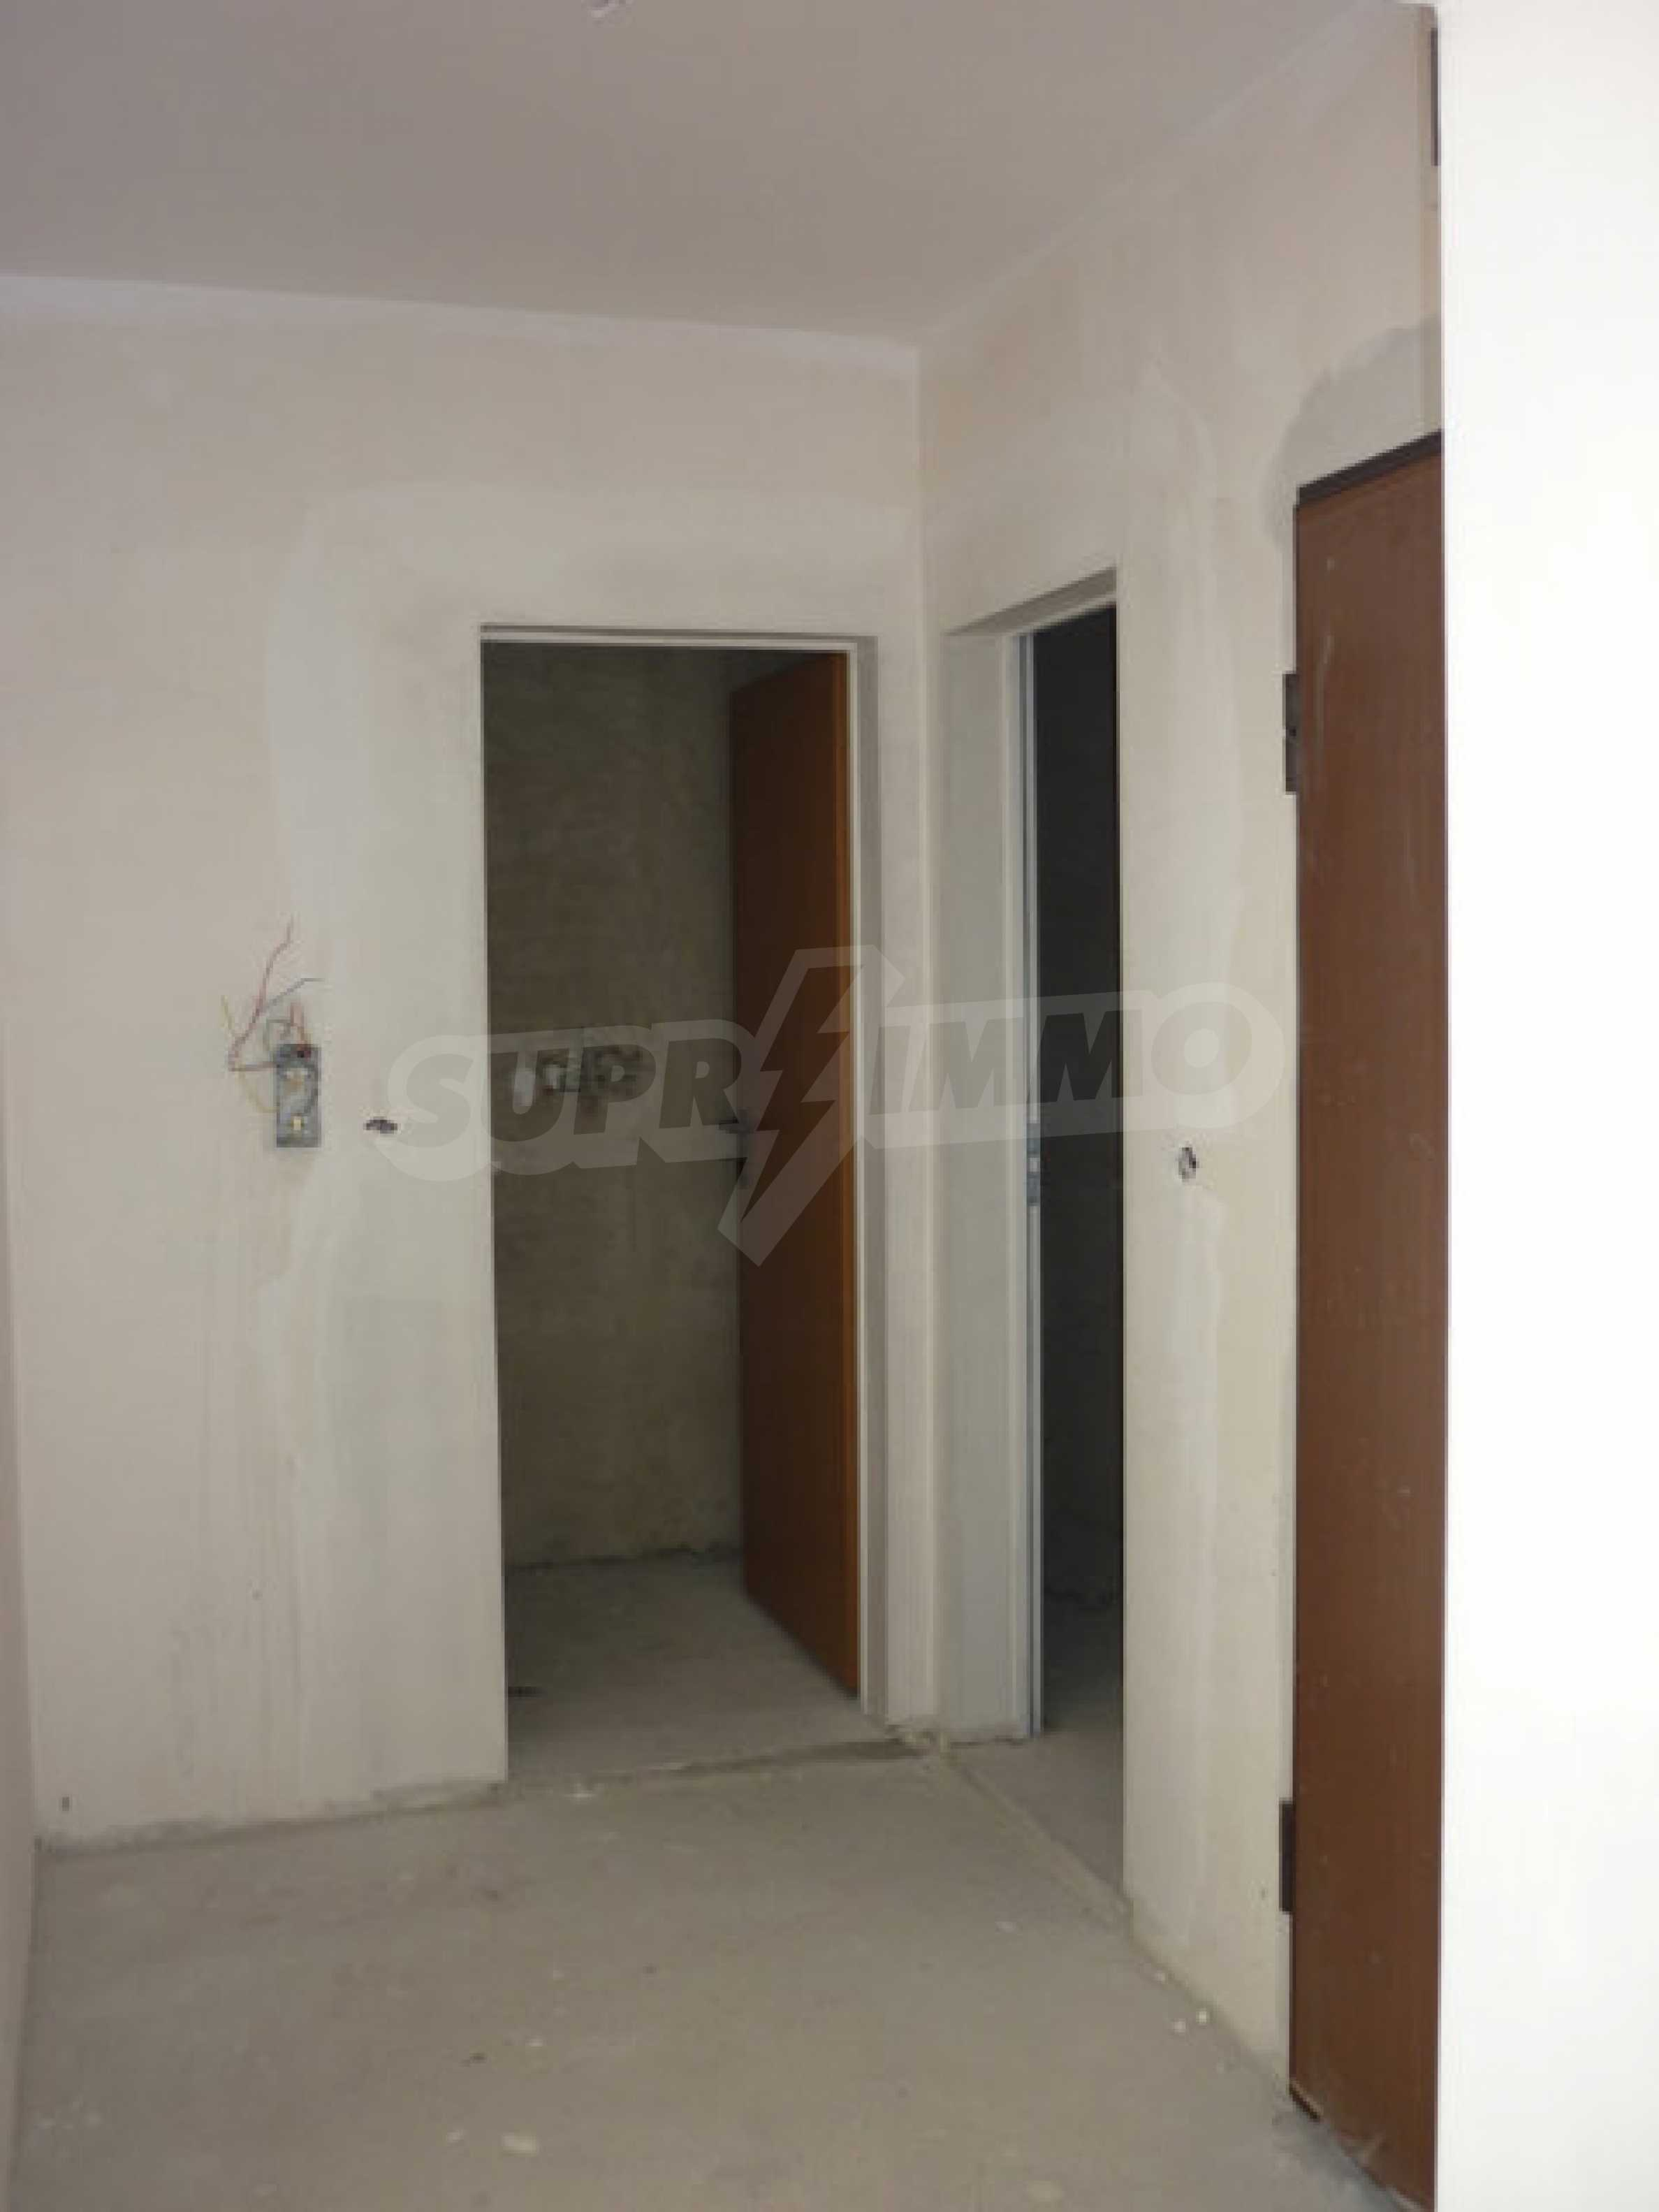 Apartments for sale in a new building in Pomorie 19